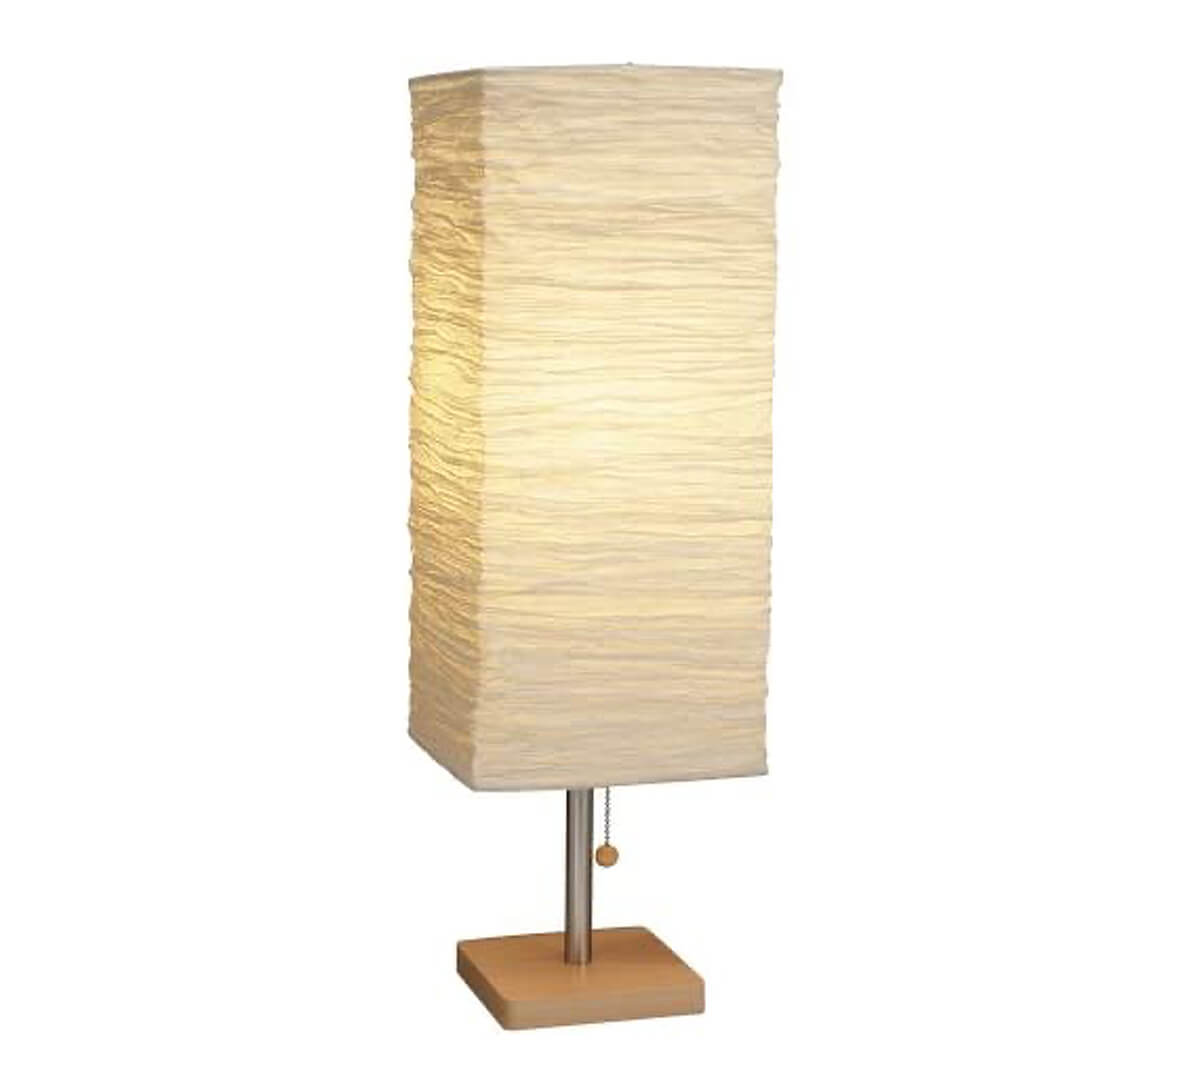 Adesso 8021-12 Dune Table Lamp